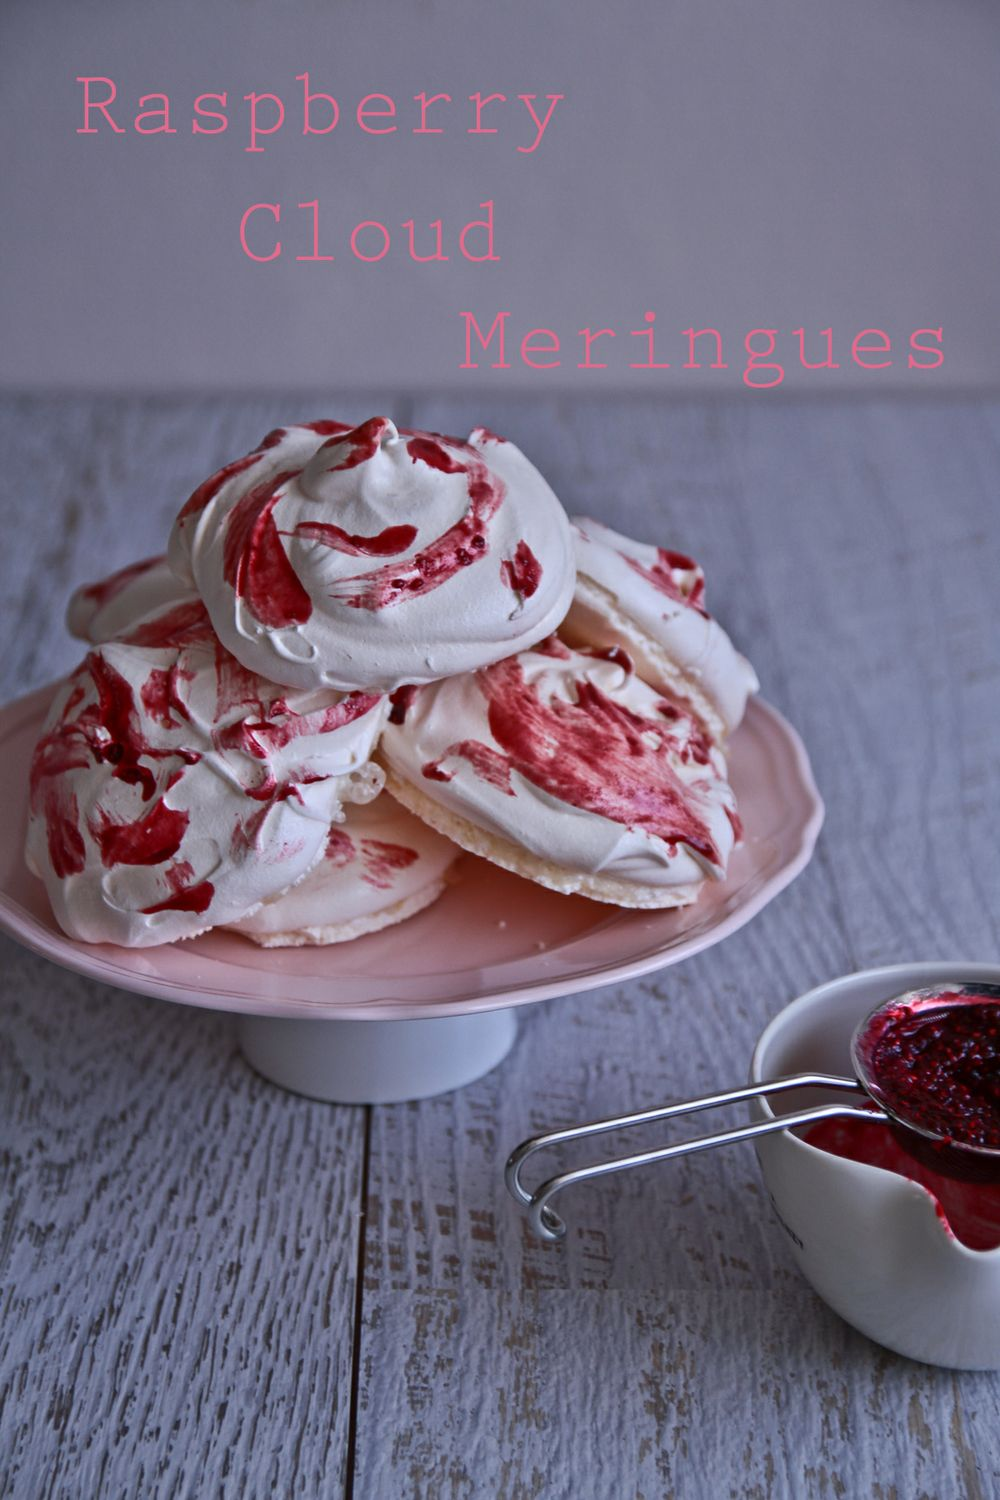 Raspberry Meringue Clouds From Heaven